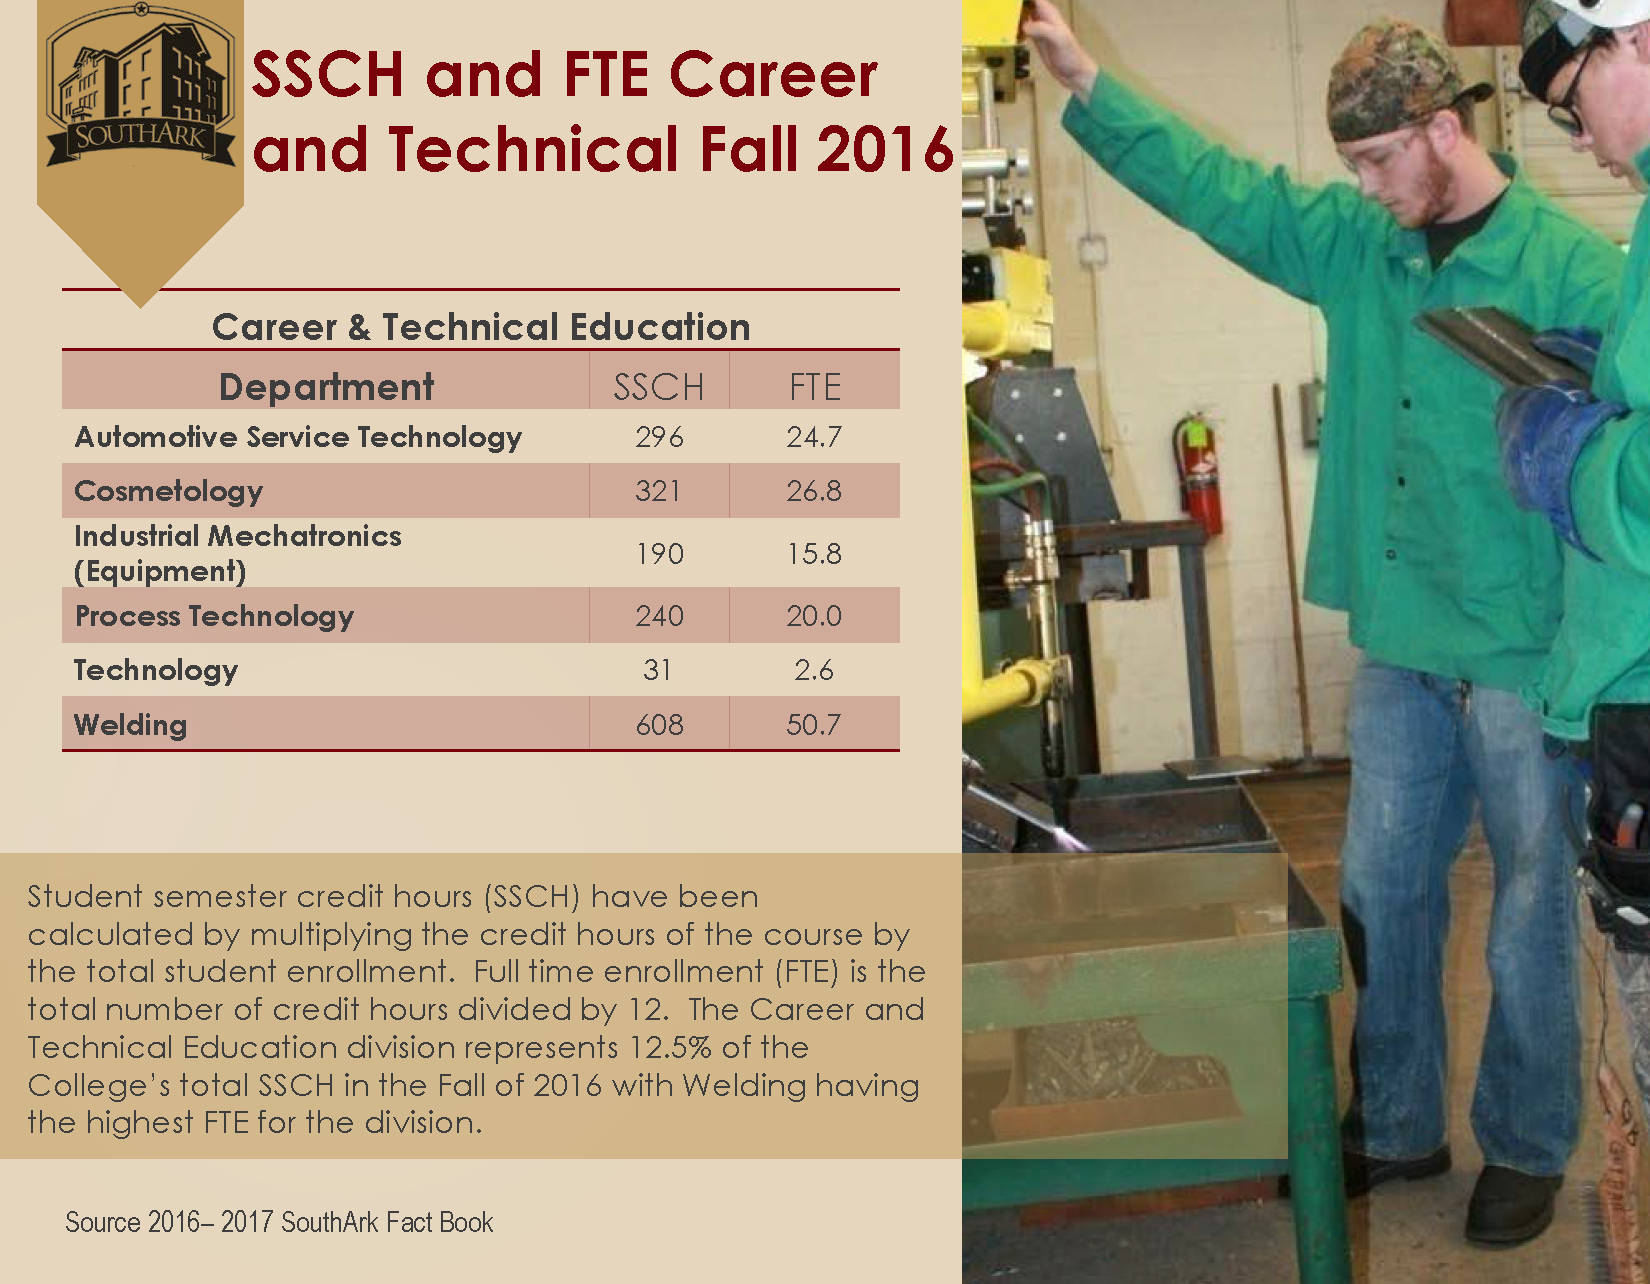 SSCH and FTE CareerTechnical